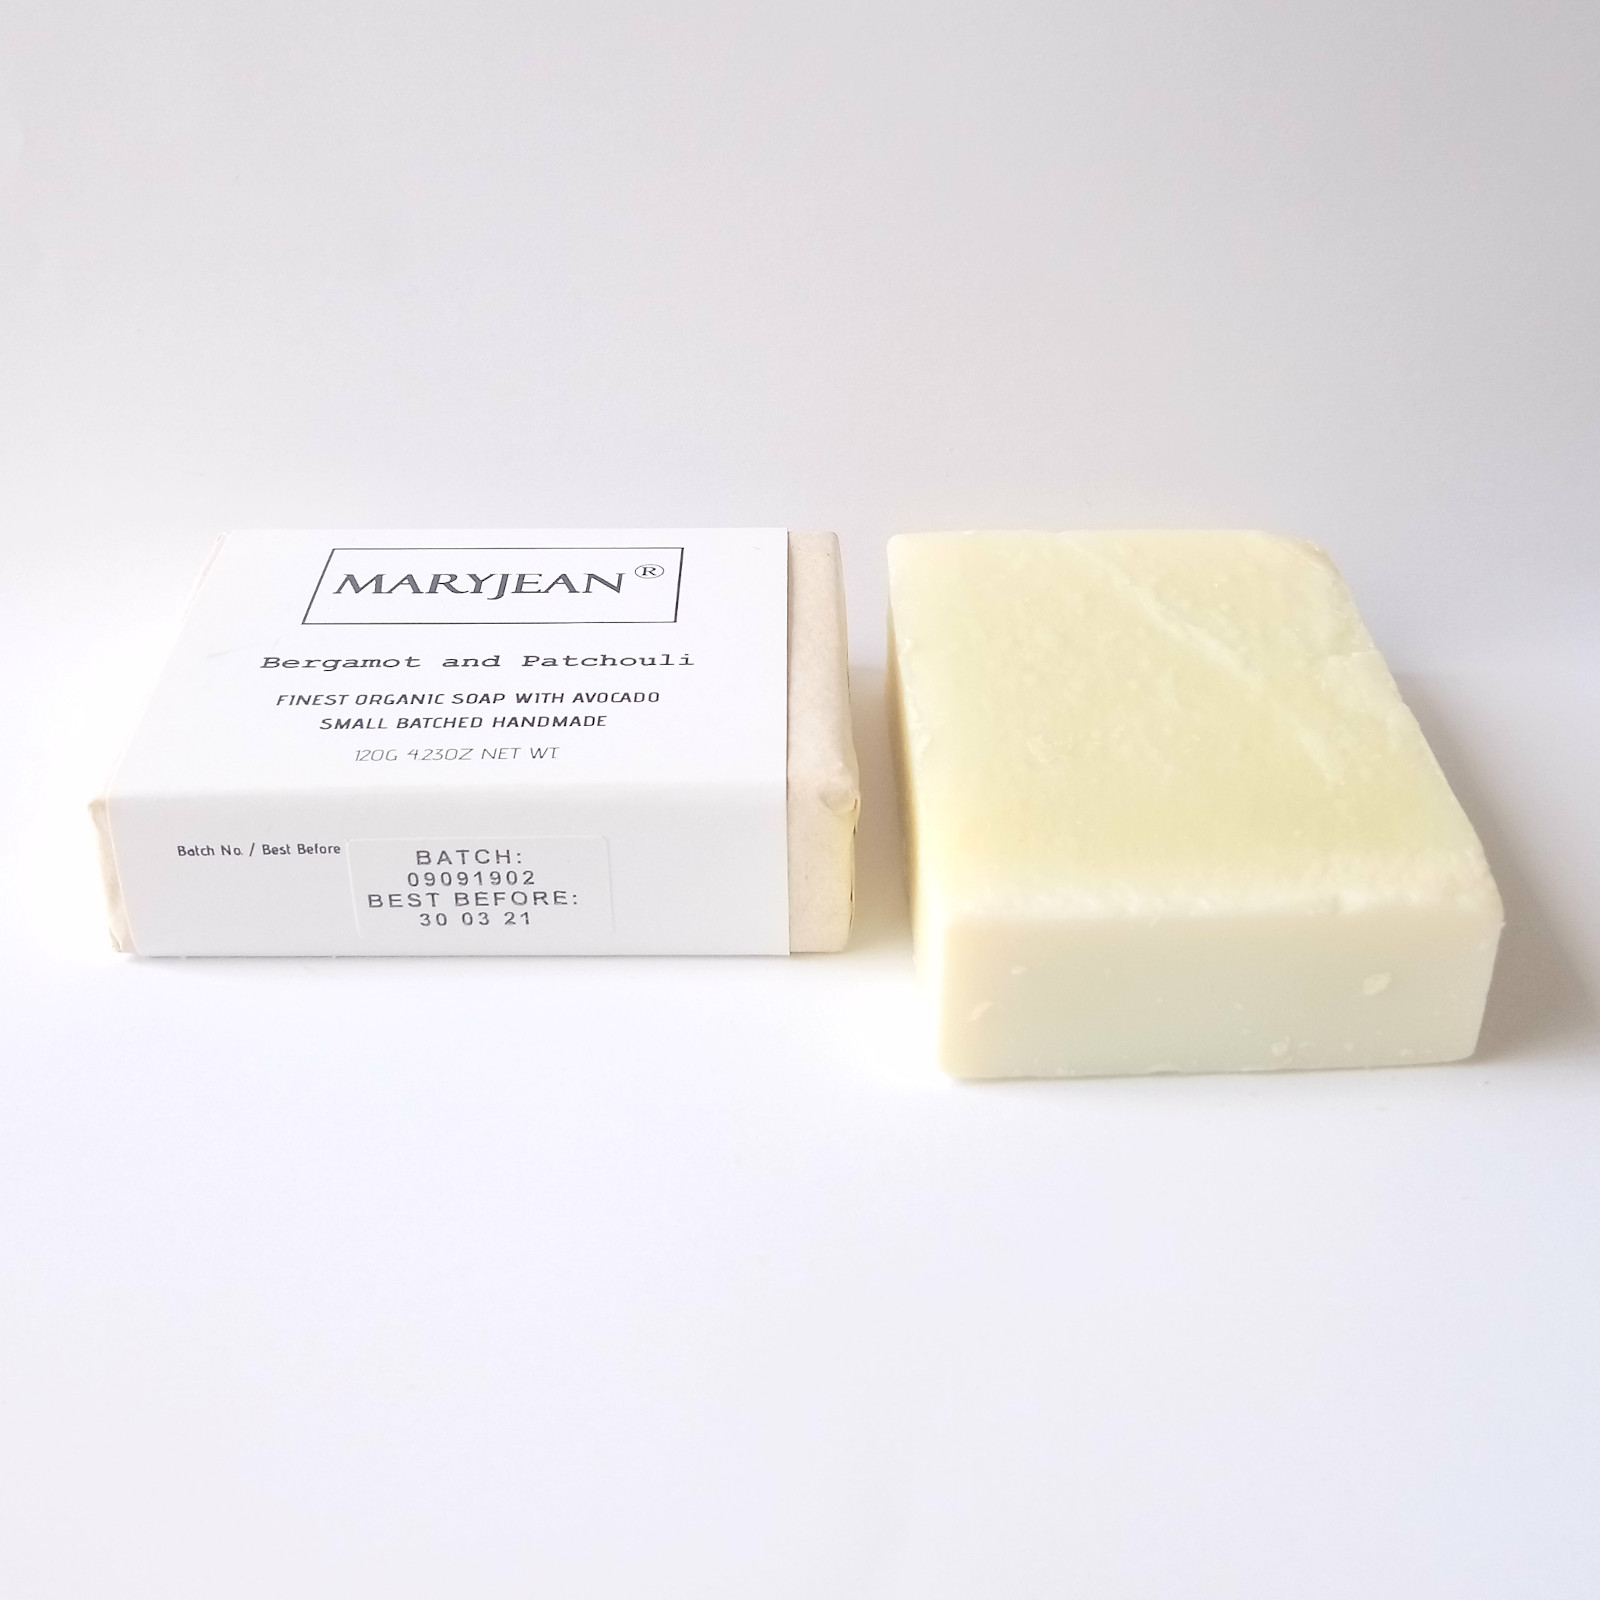 Handmade with certified organic oils for your complete peace of mind and worry free beauty 100% traditional artisan methods to create a luxurious soap bar leaving the skin soft and smelling fresh